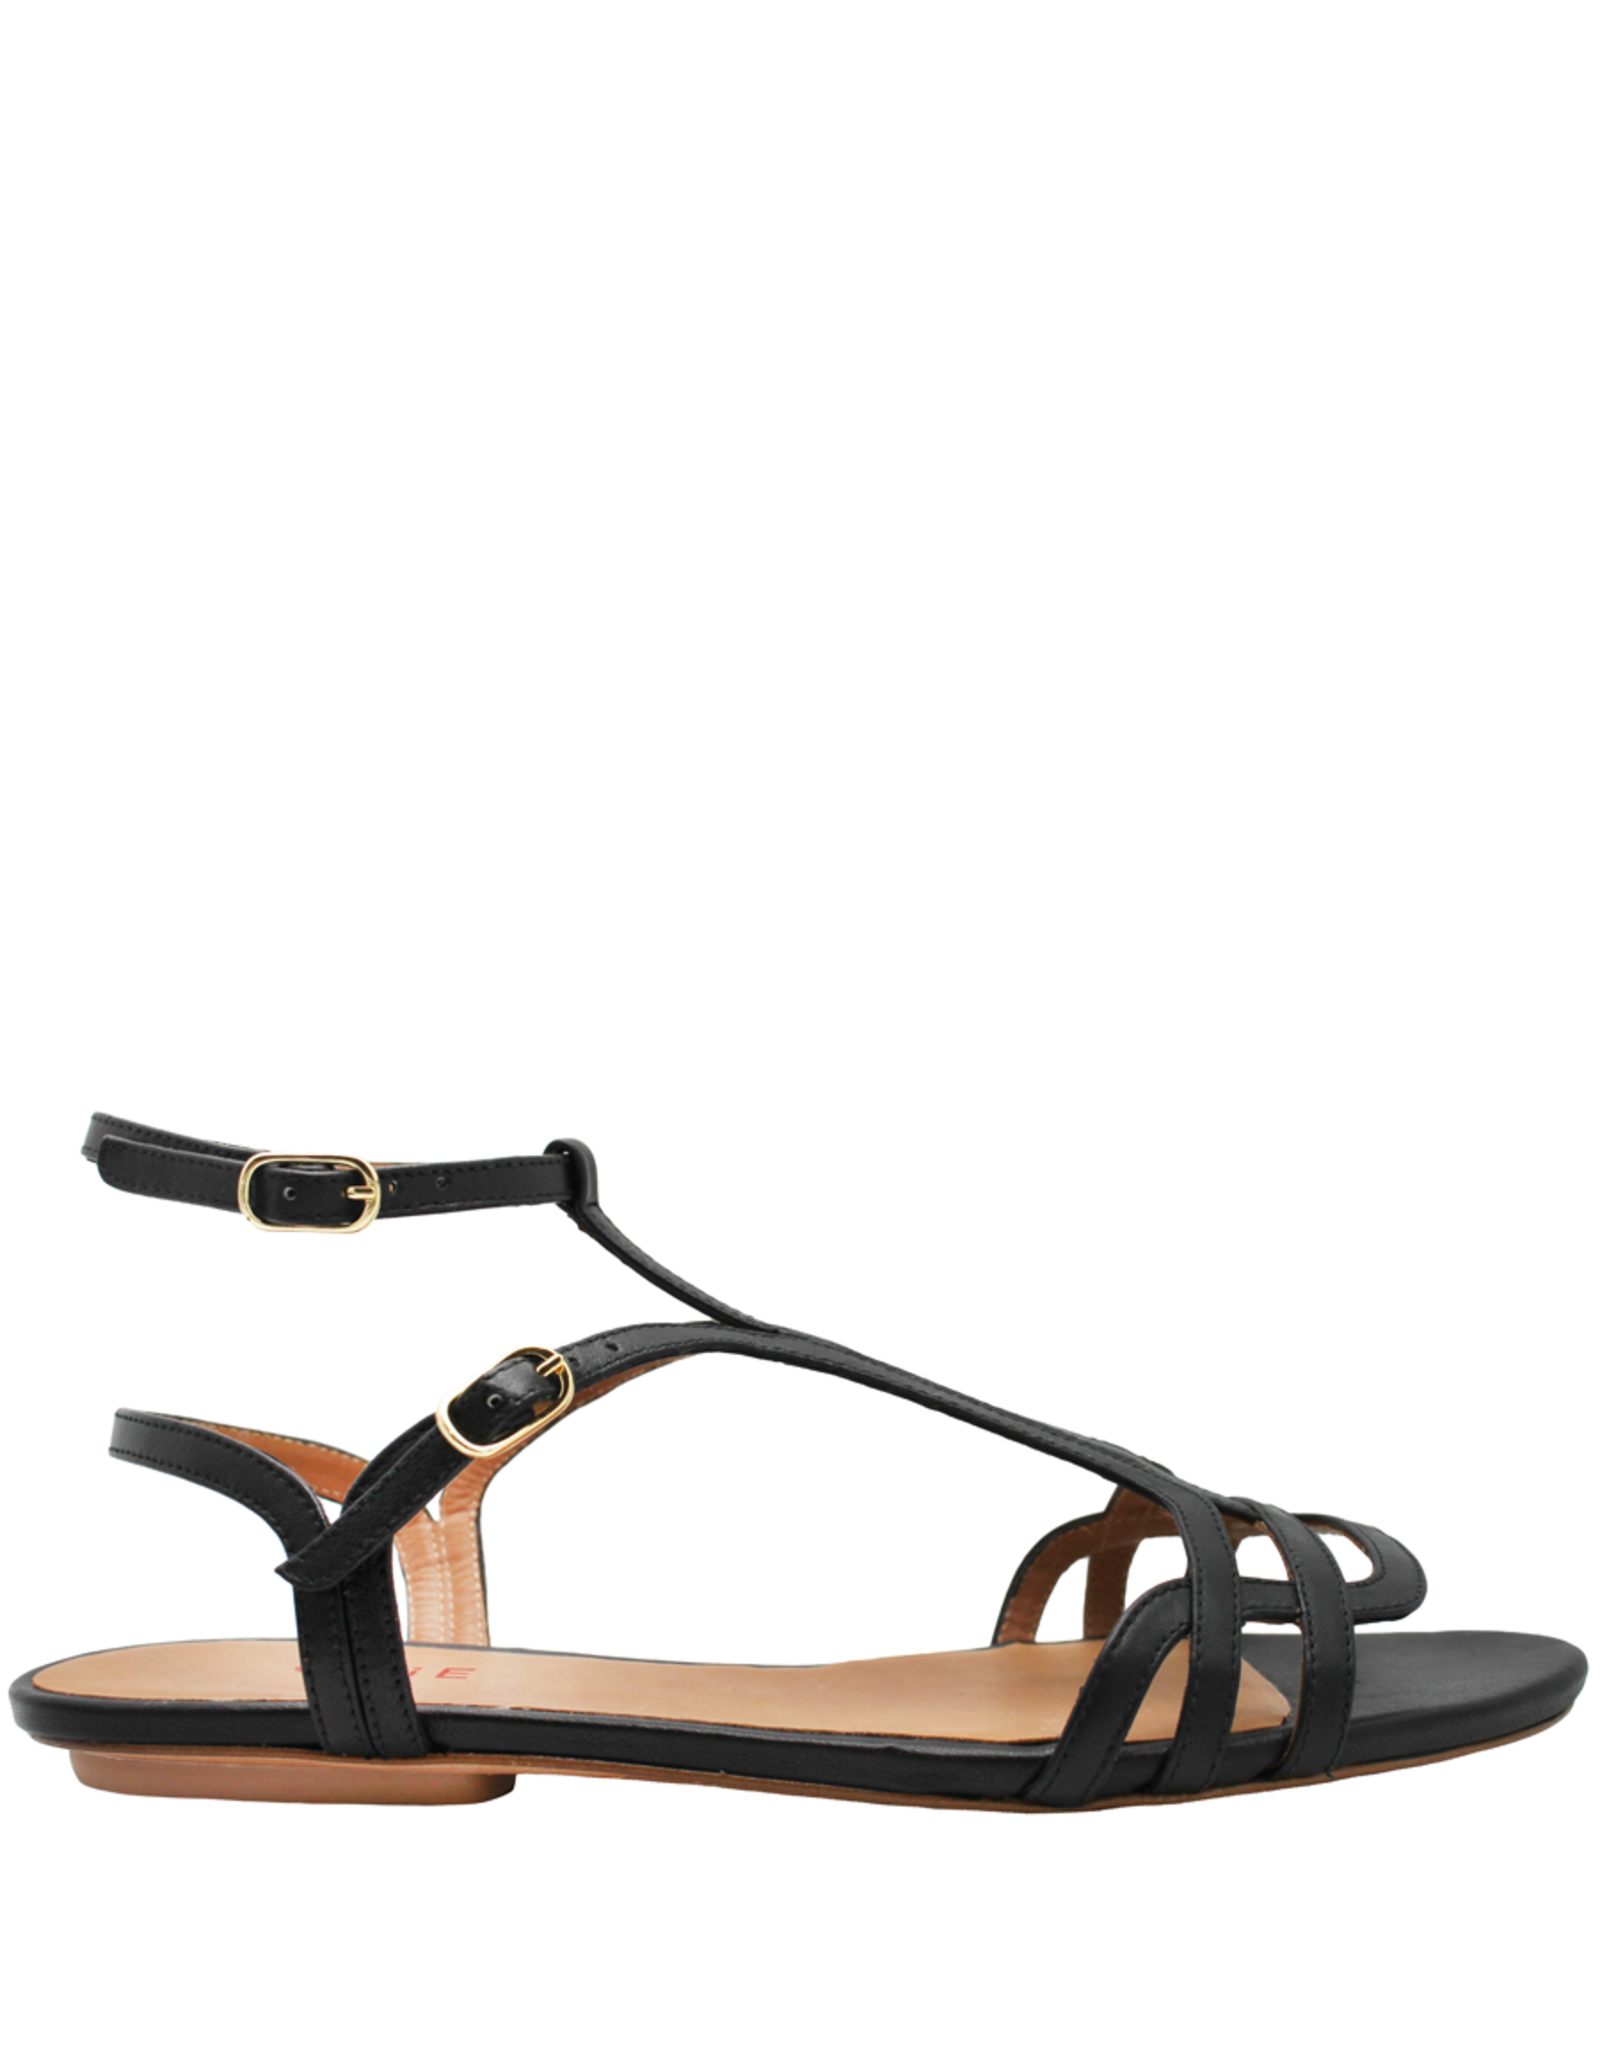 ChieMihara ChieMihara Black Nappa Double Buckle Art Deco Sandal Yael